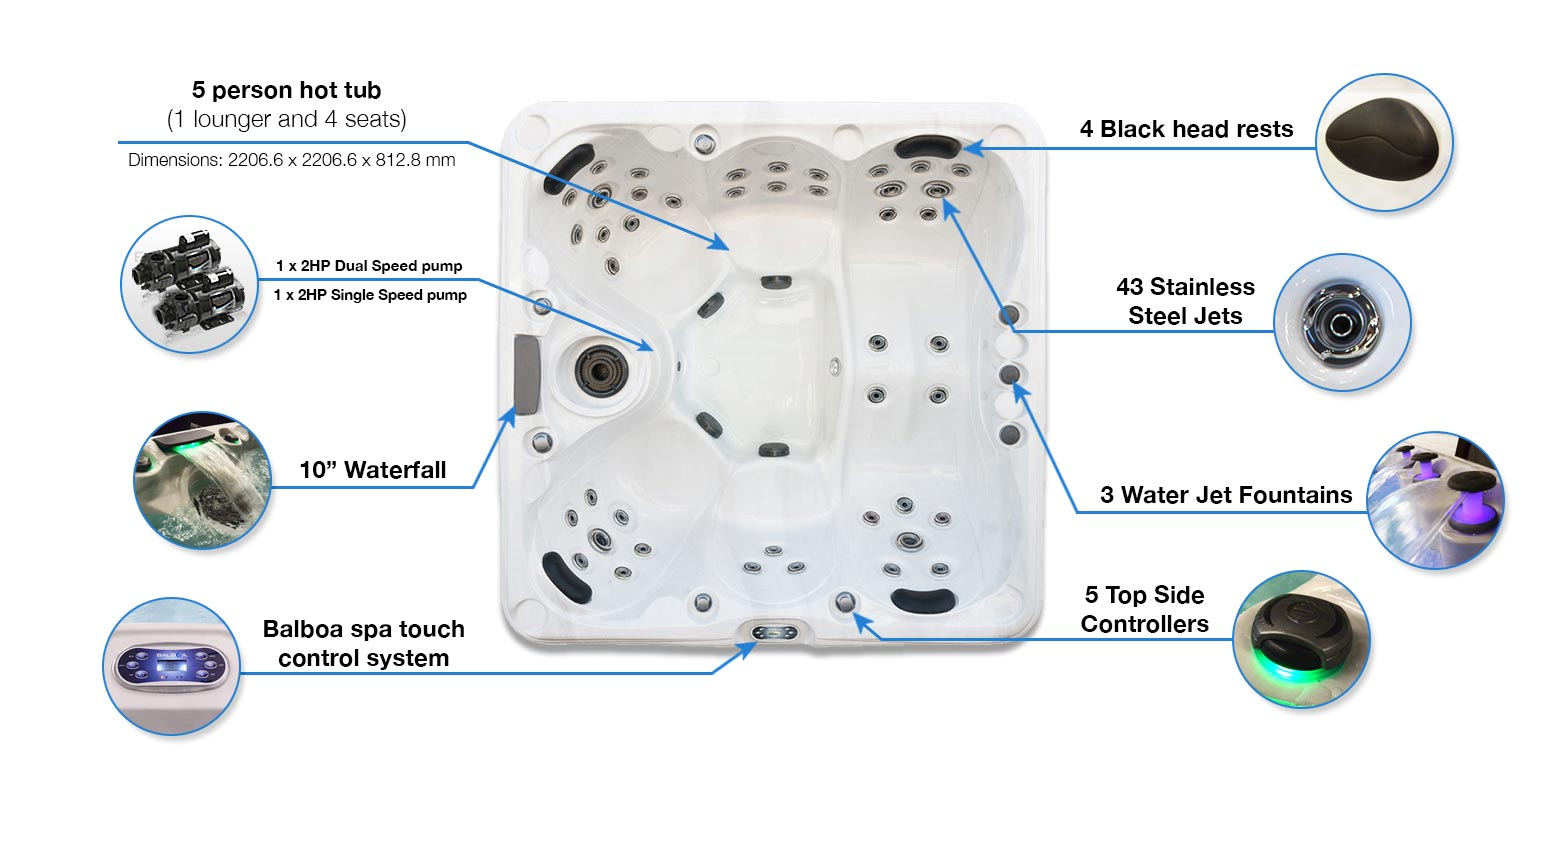 Malibu 3 - 5 Person Hot Tub Features | All American Spa